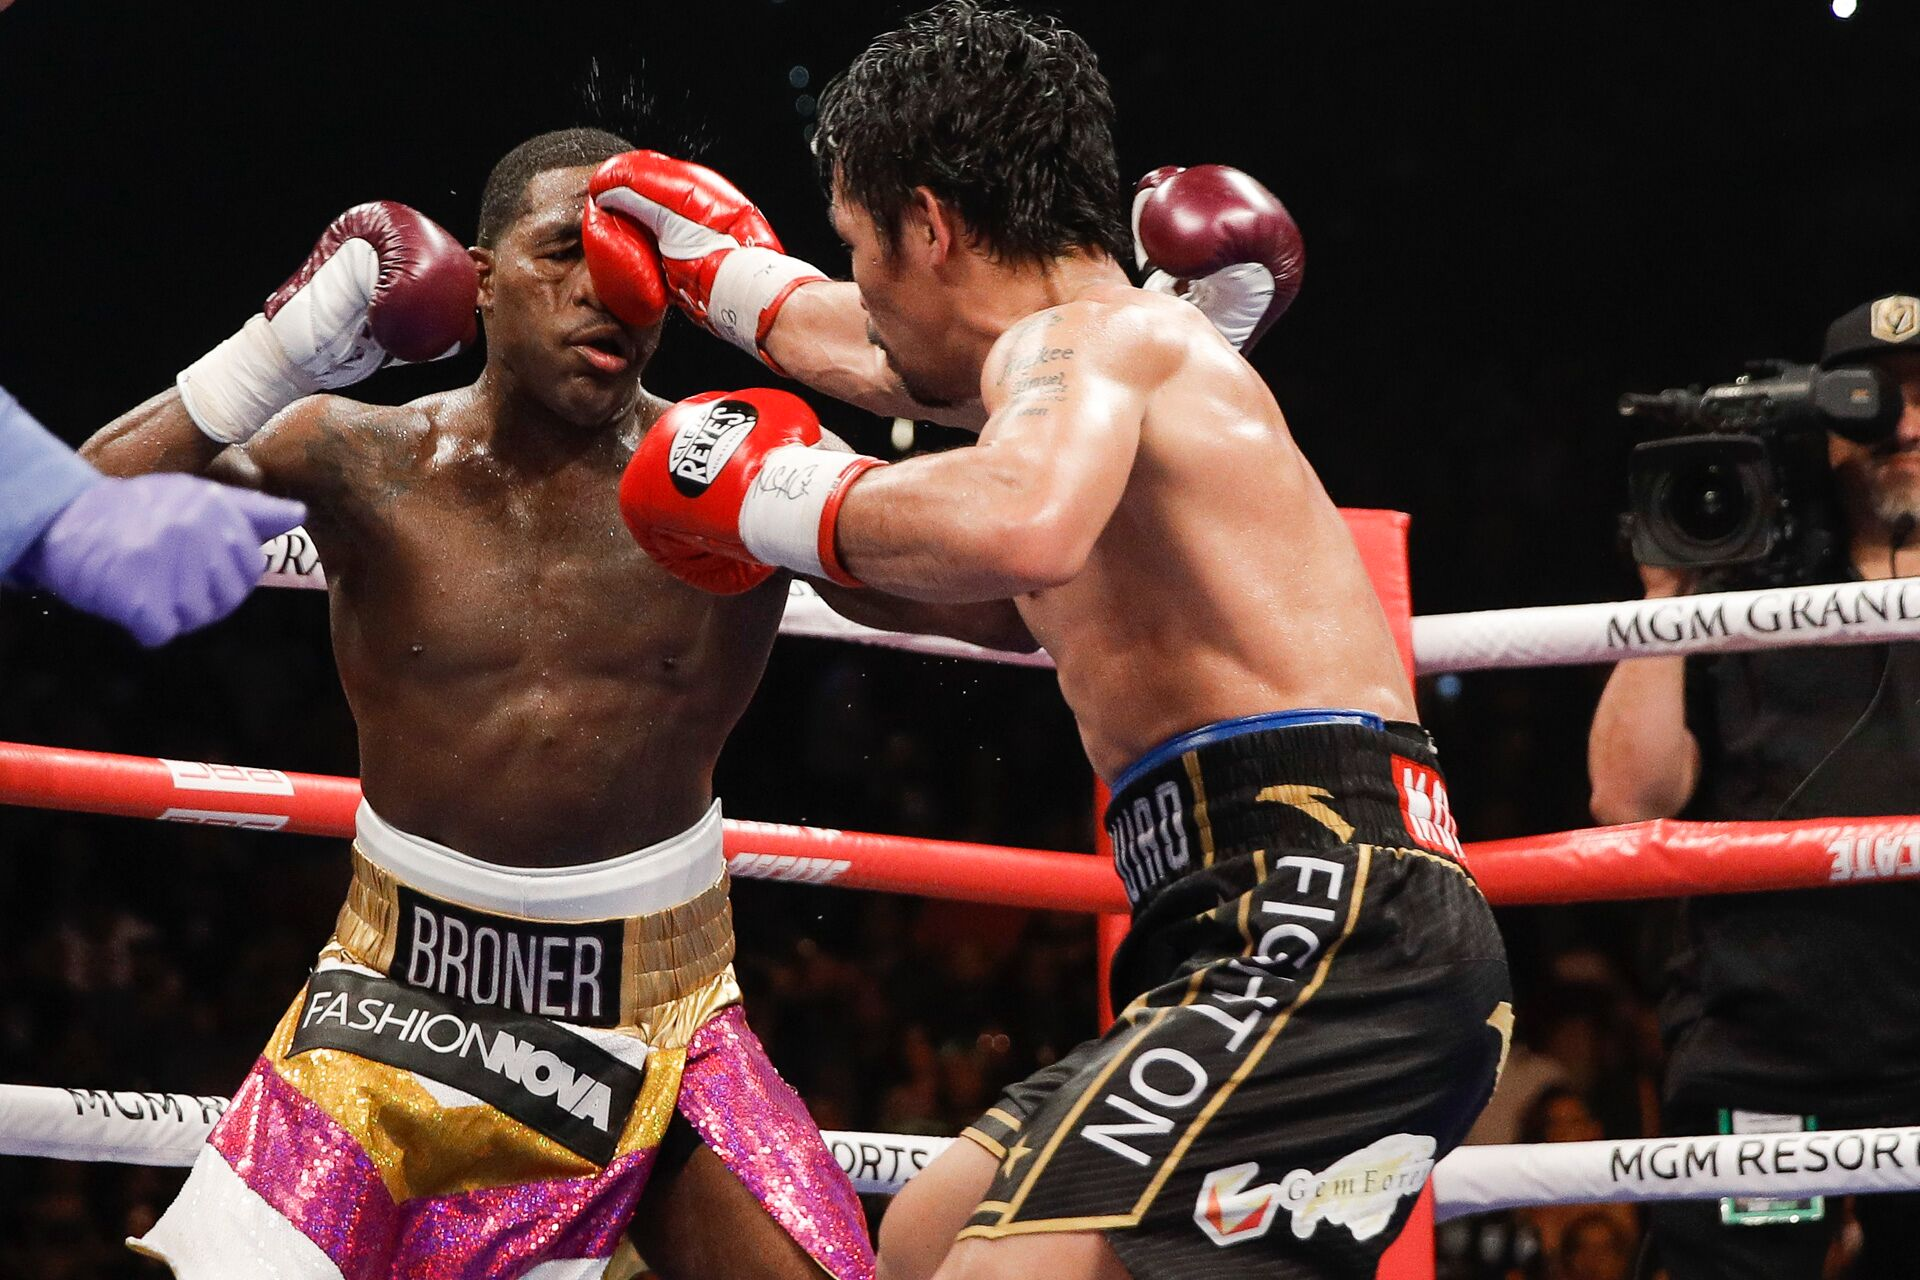 pacbroner4 - The Travelin' Man goes to Manny Pacquiao vs. Adrien Broner: Part Two